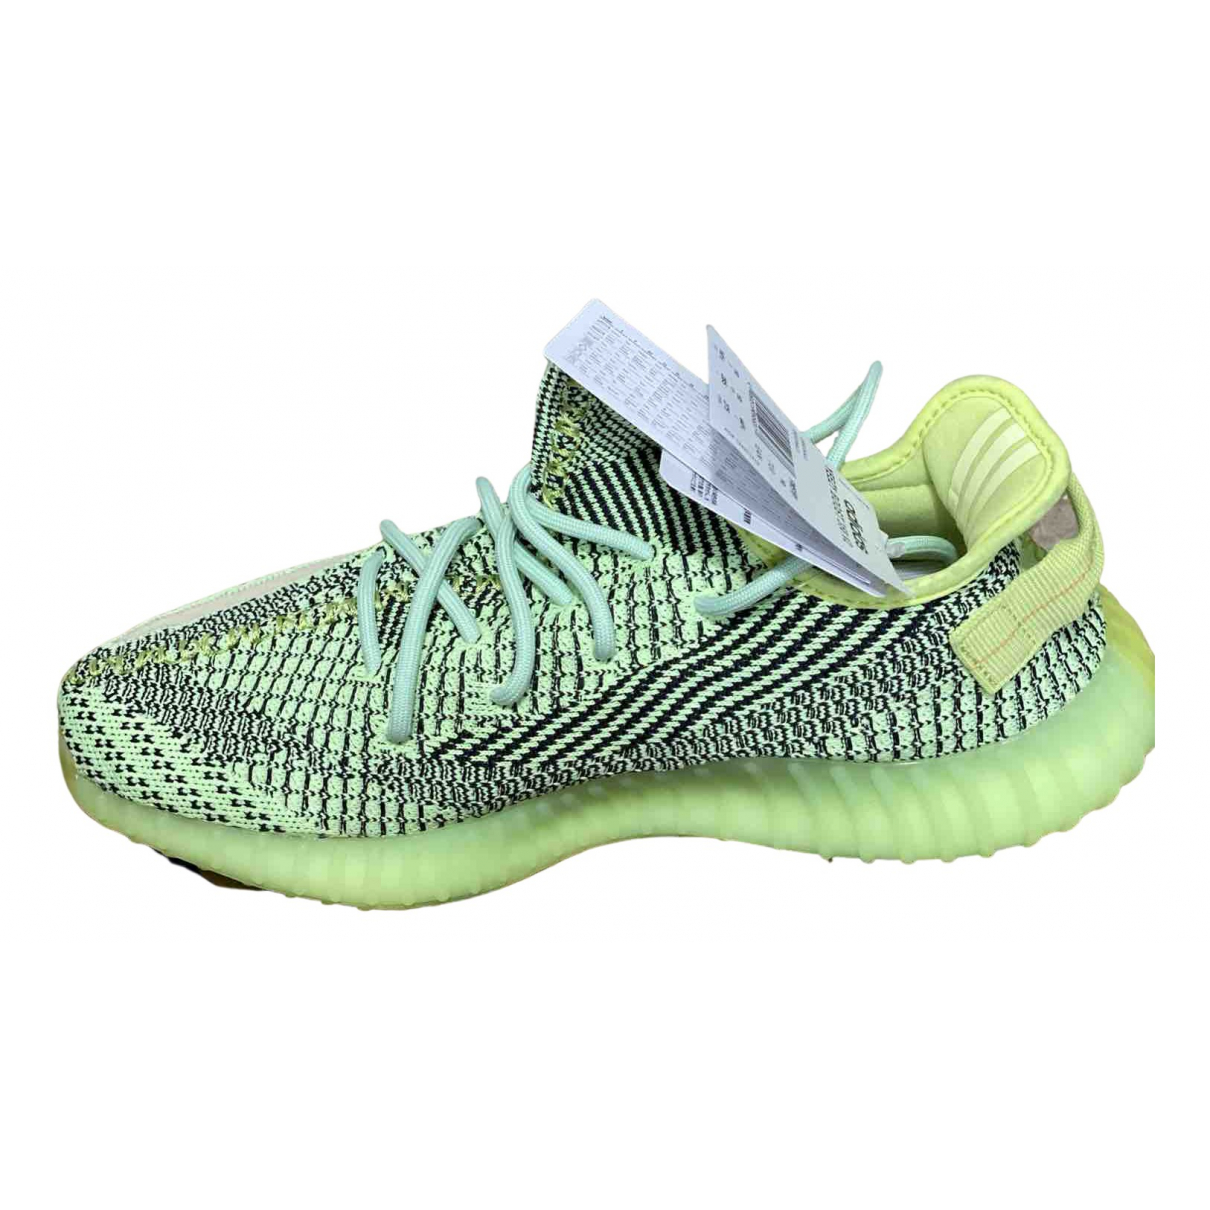 Yeezy X Adidas Boost 350 V2 Sneakers in  Gelb Polyester